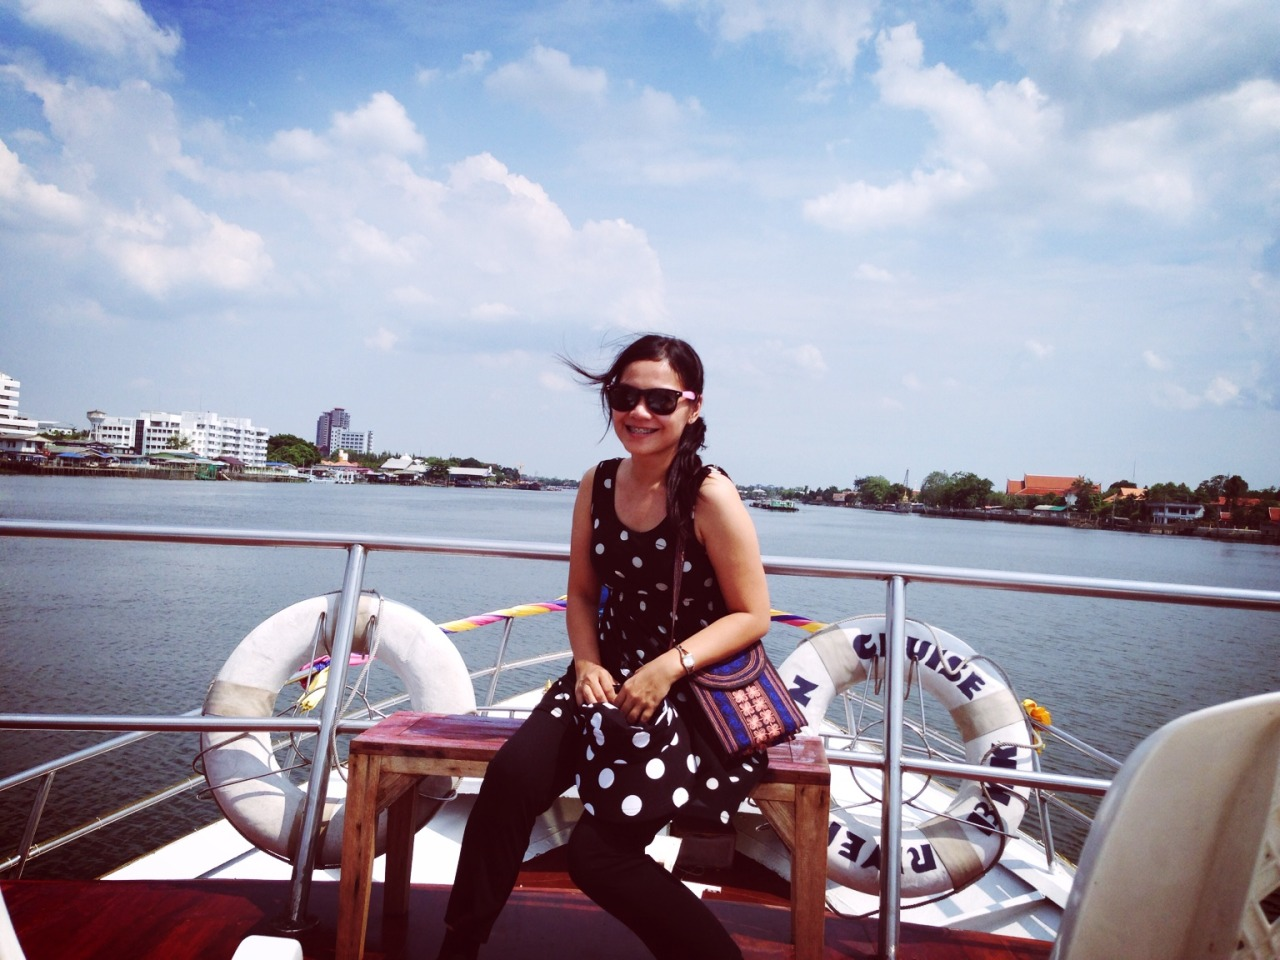 #BKKTrip #Day3 Cruised back to Bangkok via the mighty Chao Phraya River. – View on Path.